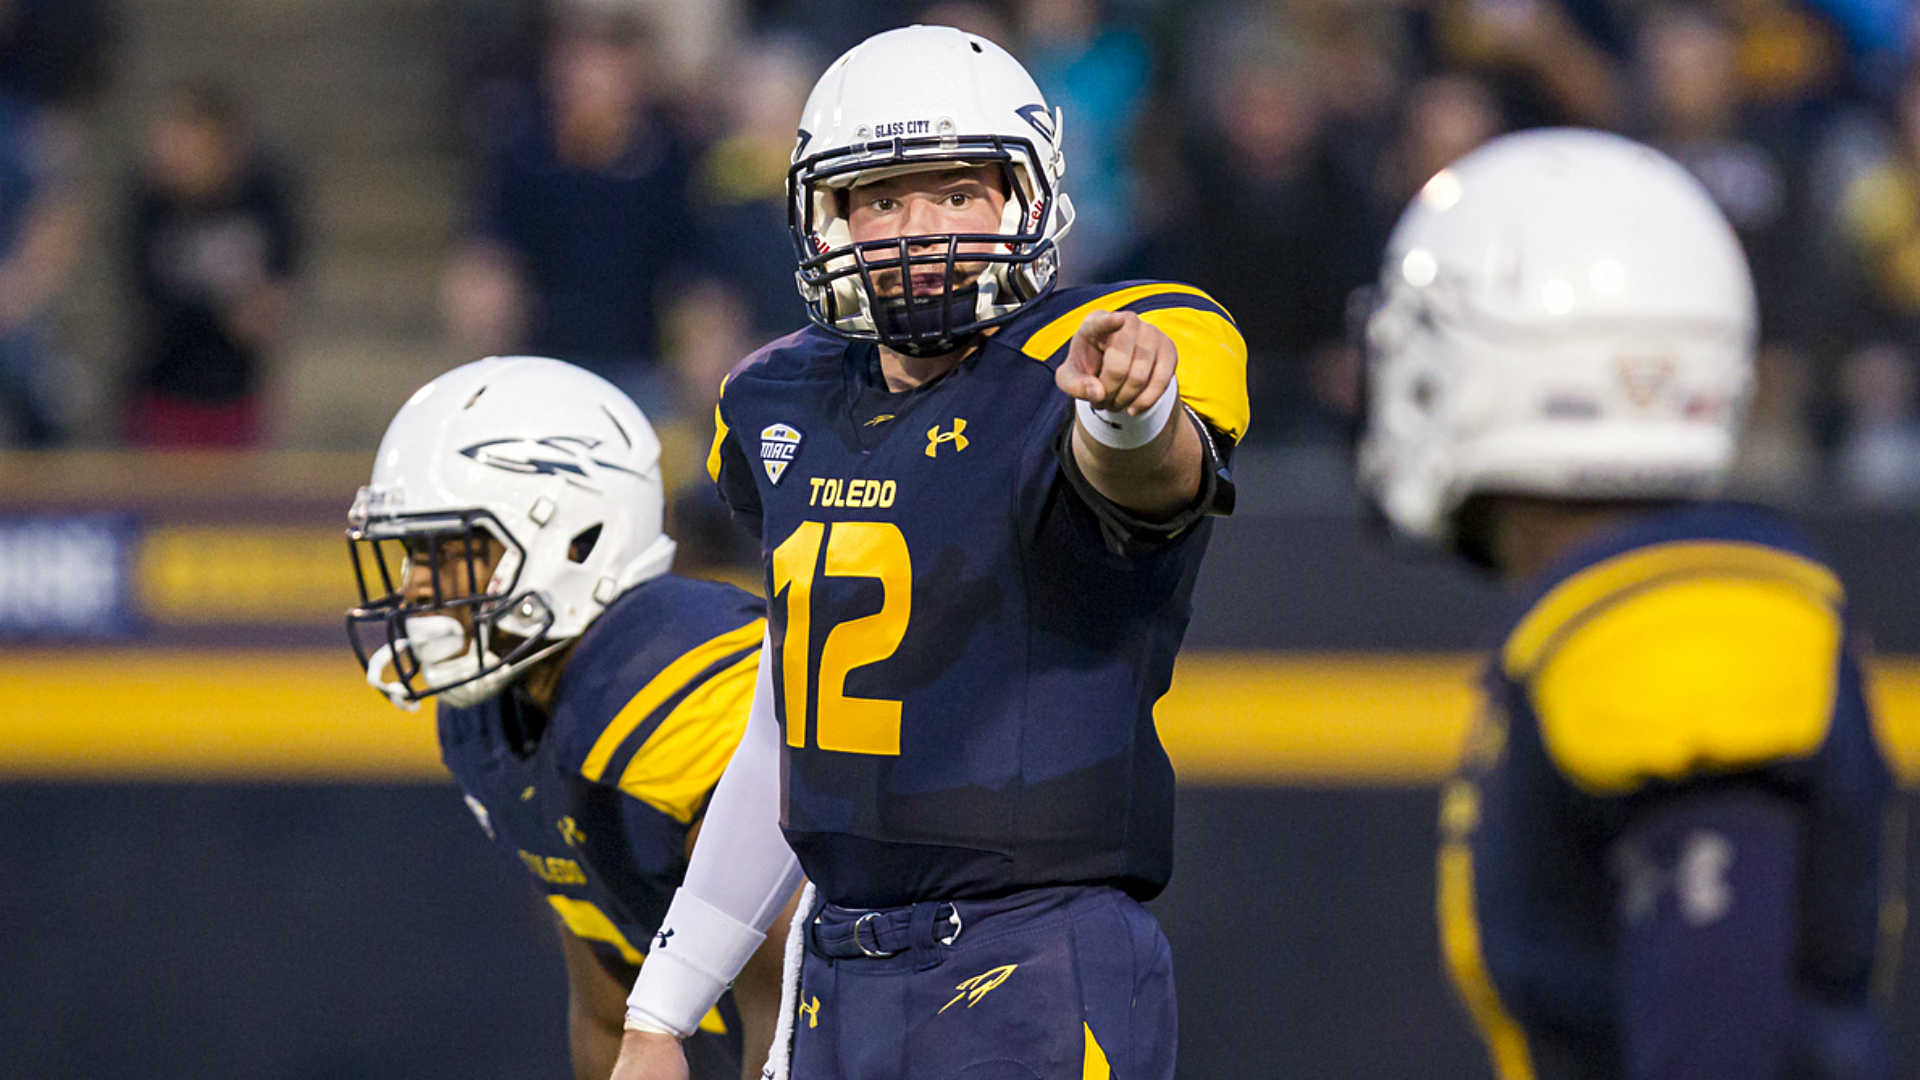 Toledo at Bowling Green betting lines and picks – Two of nation's best spread-covering teams clash in MAC